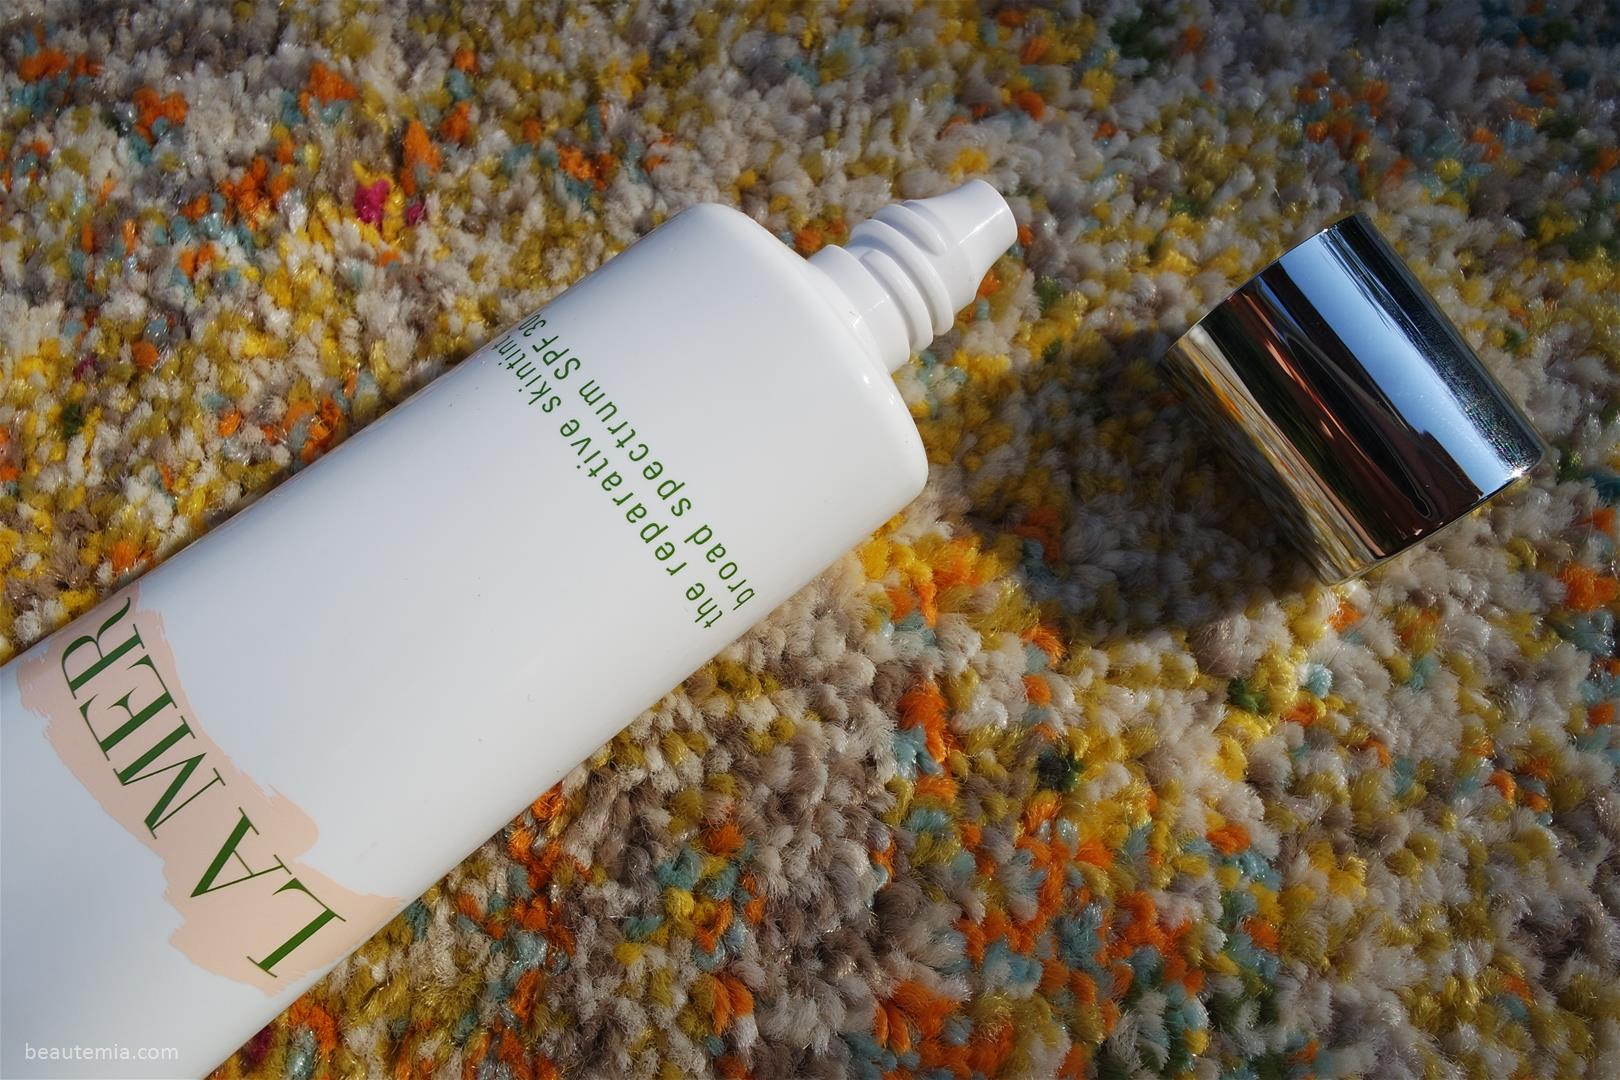 The Reparative SkinTint SPF 30 by La Mer #22